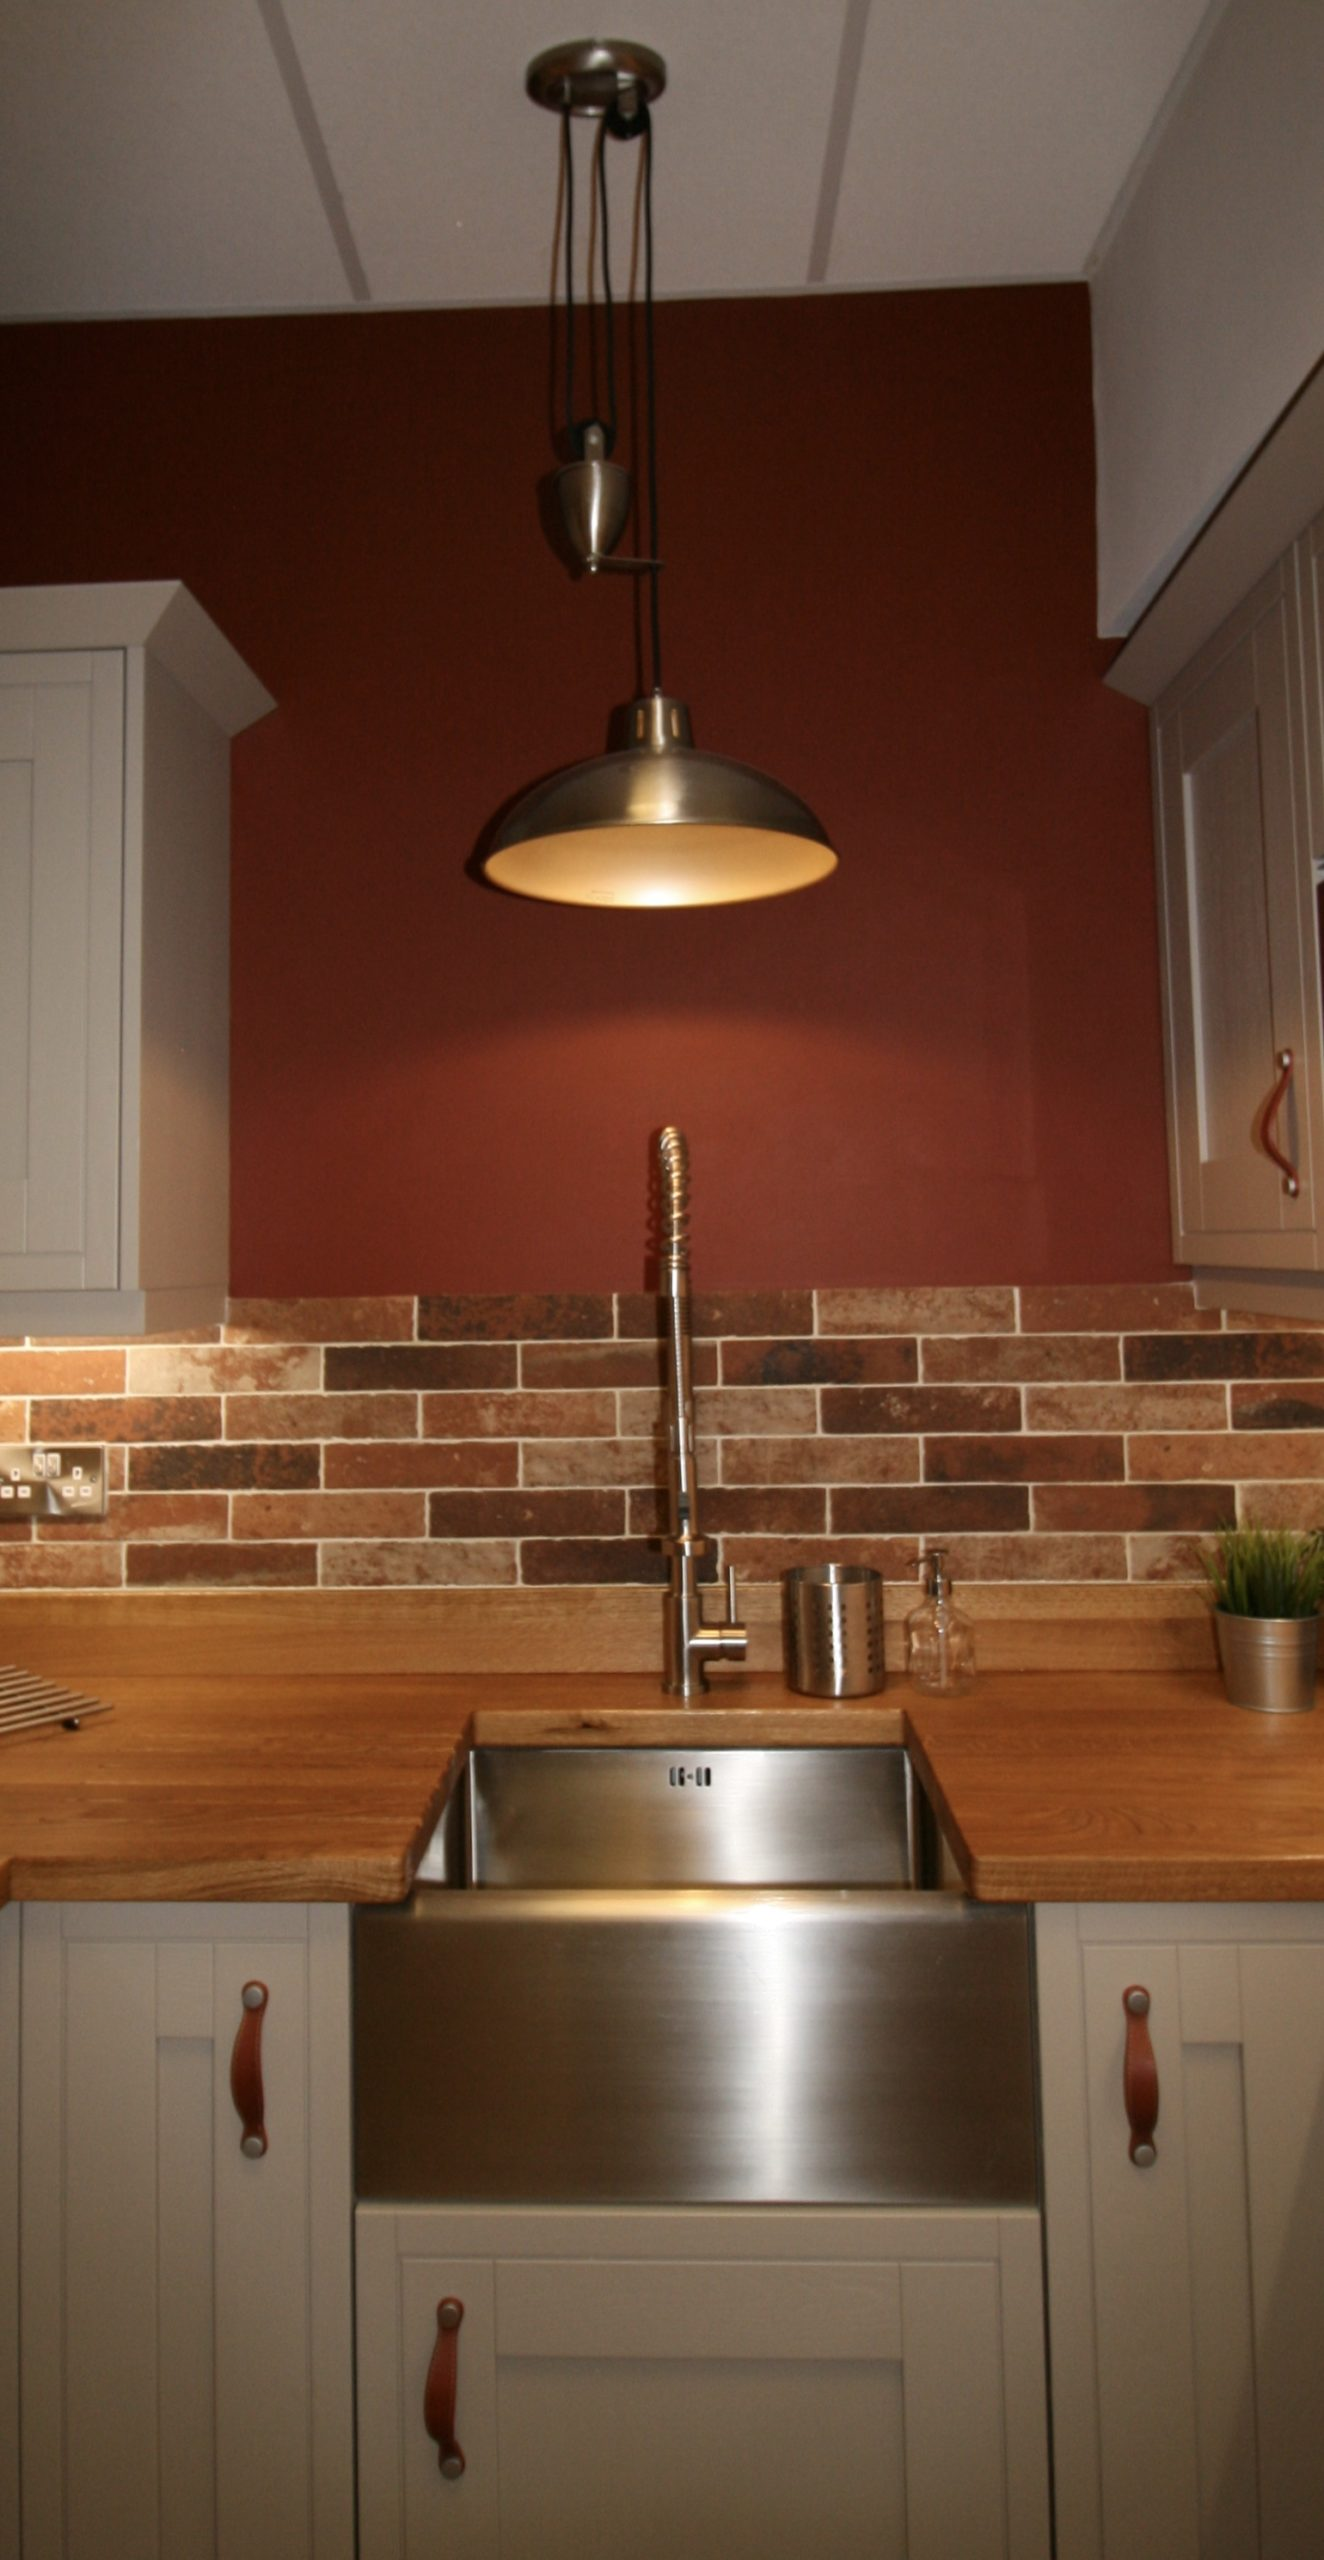 Apron front stainless steel belfast sink with stainless steel rise and fall pendant light. The wall colour is Mince Tarts by Valspar